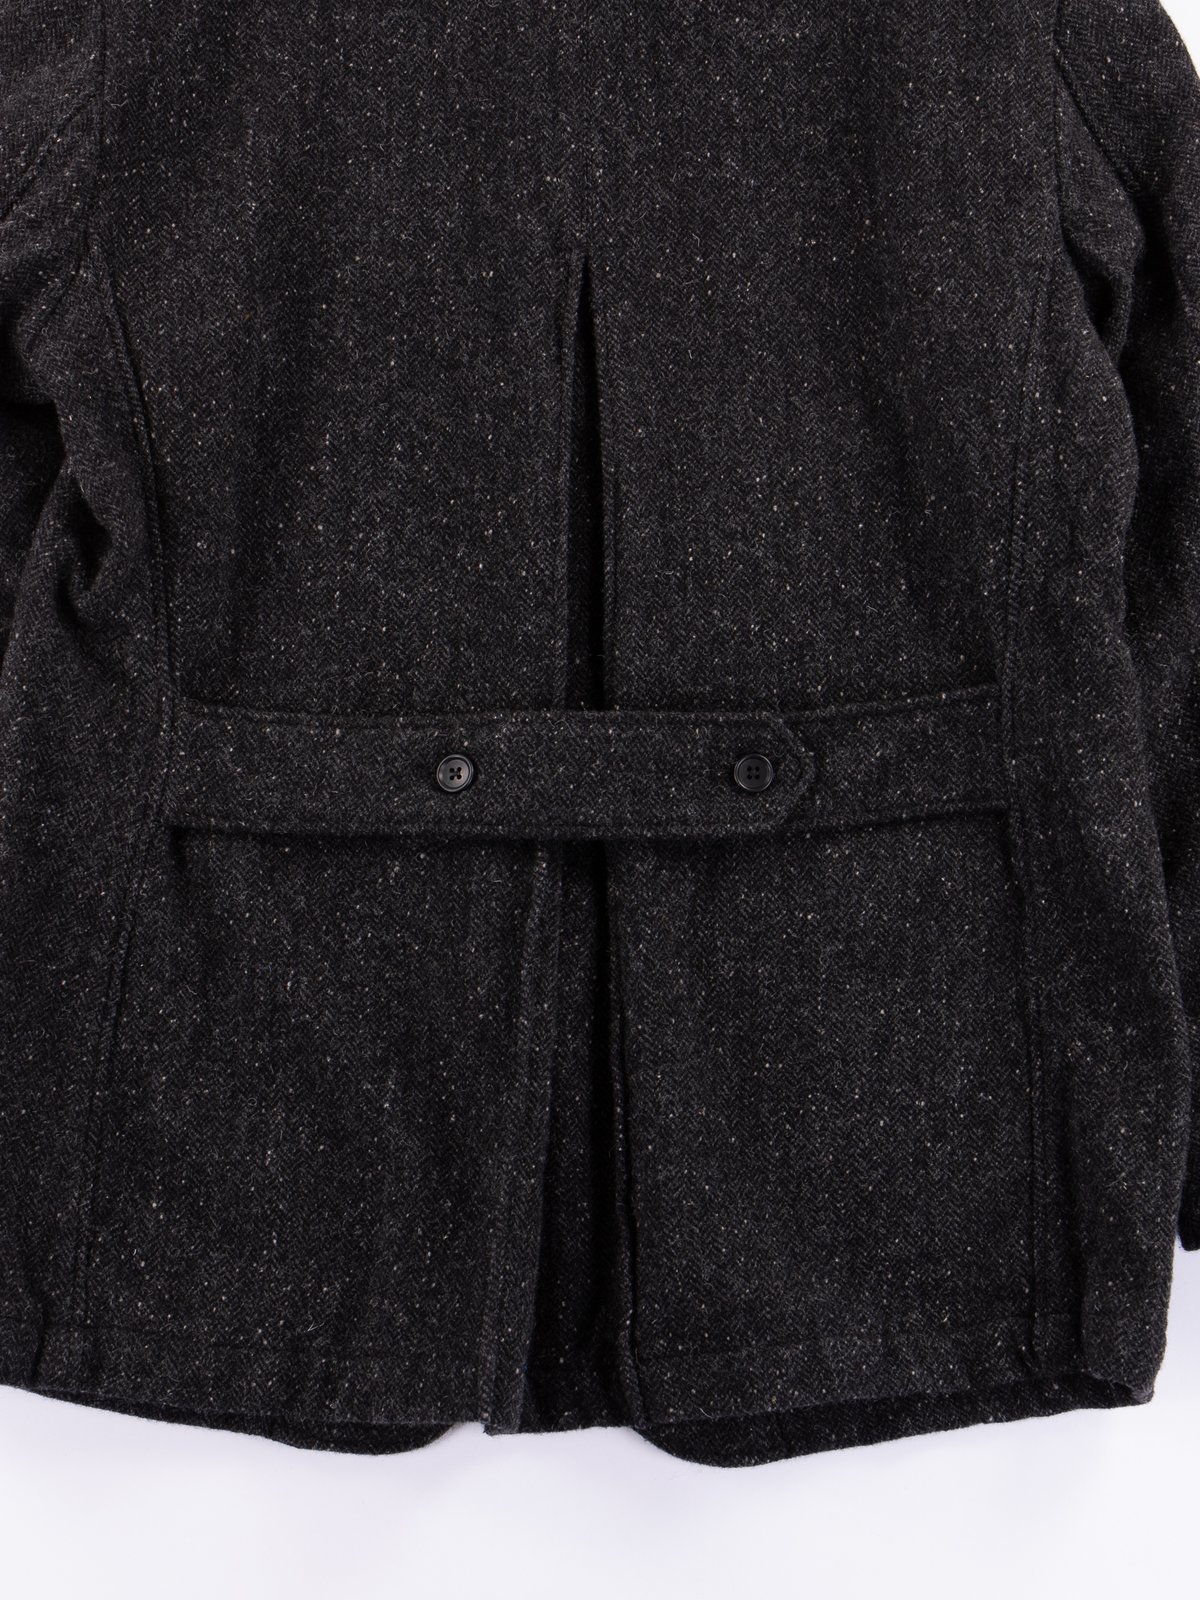 Charcoal HB Tweed Grim Jacket - Image 9